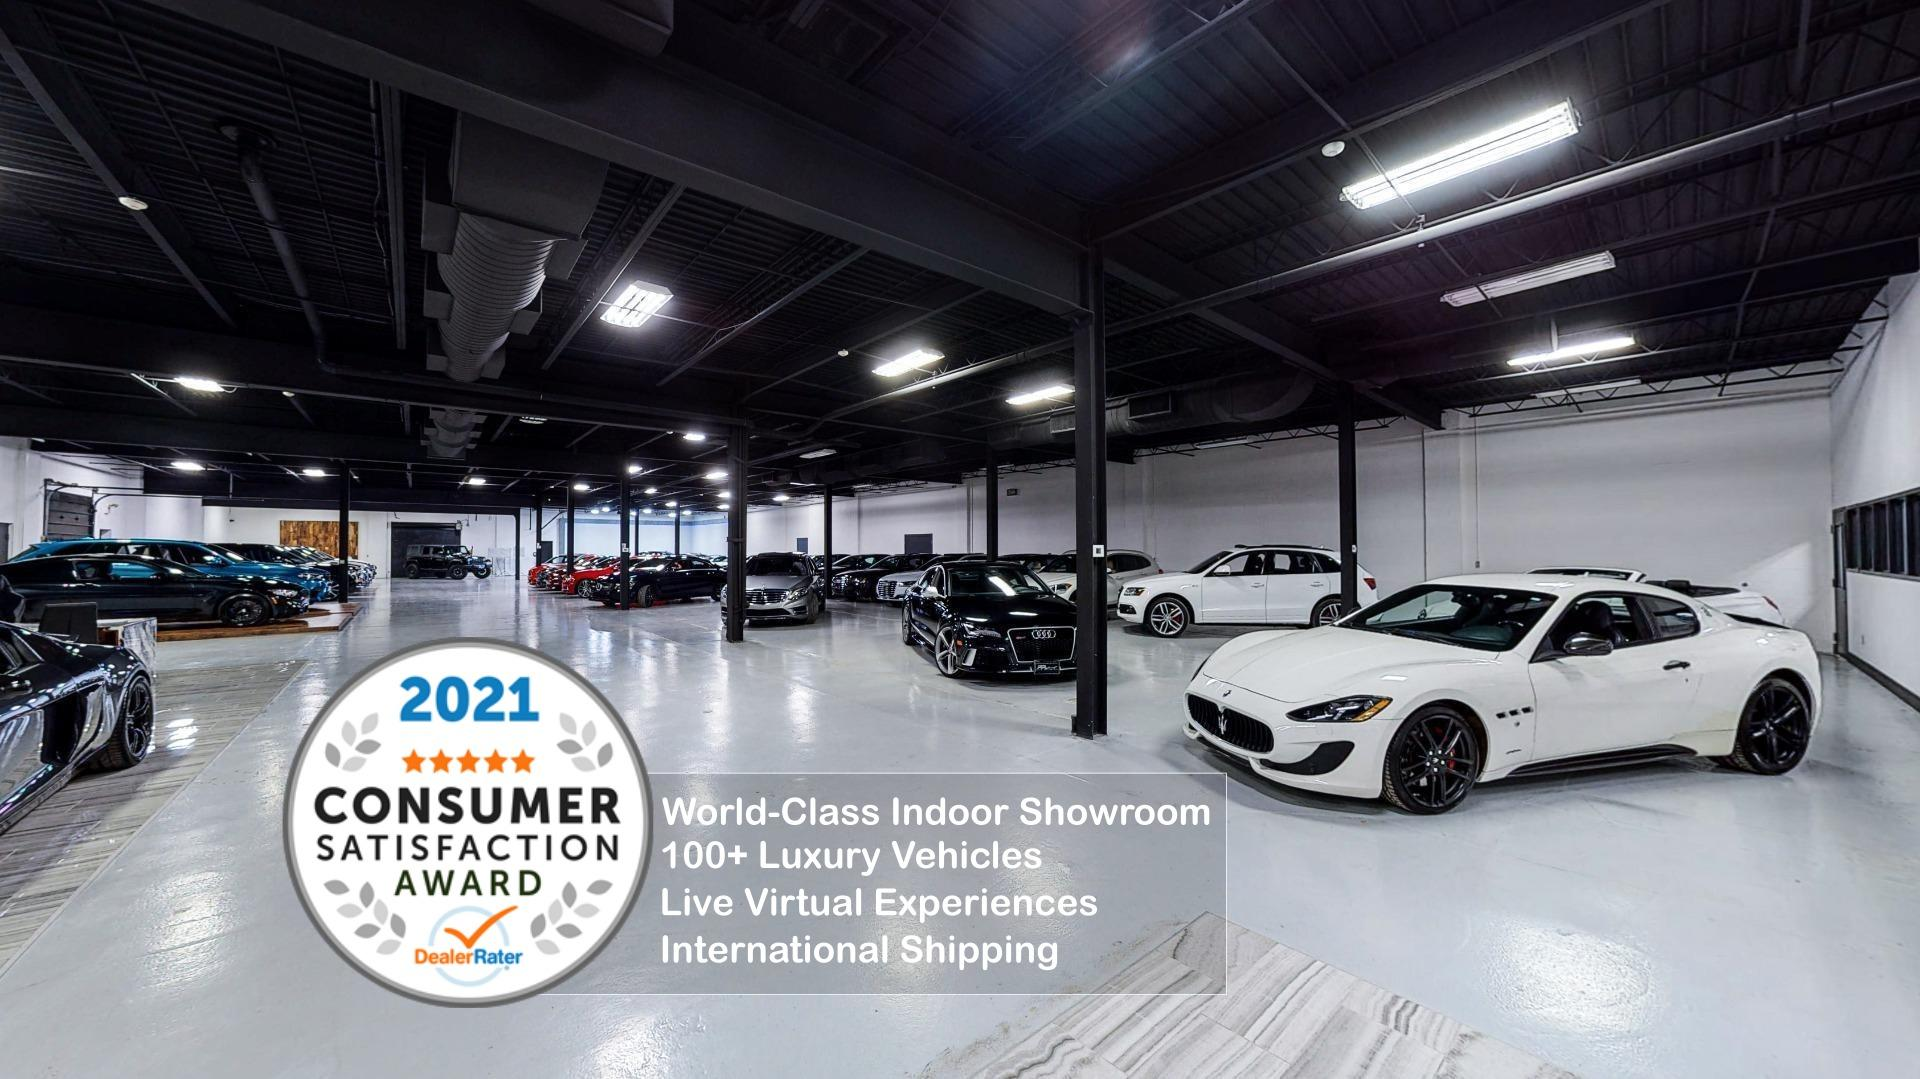 Used 2017 Maserati Ghibli S Q4 for sale $41,493 at Perfect Auto Collection in Akron OH 44310 3